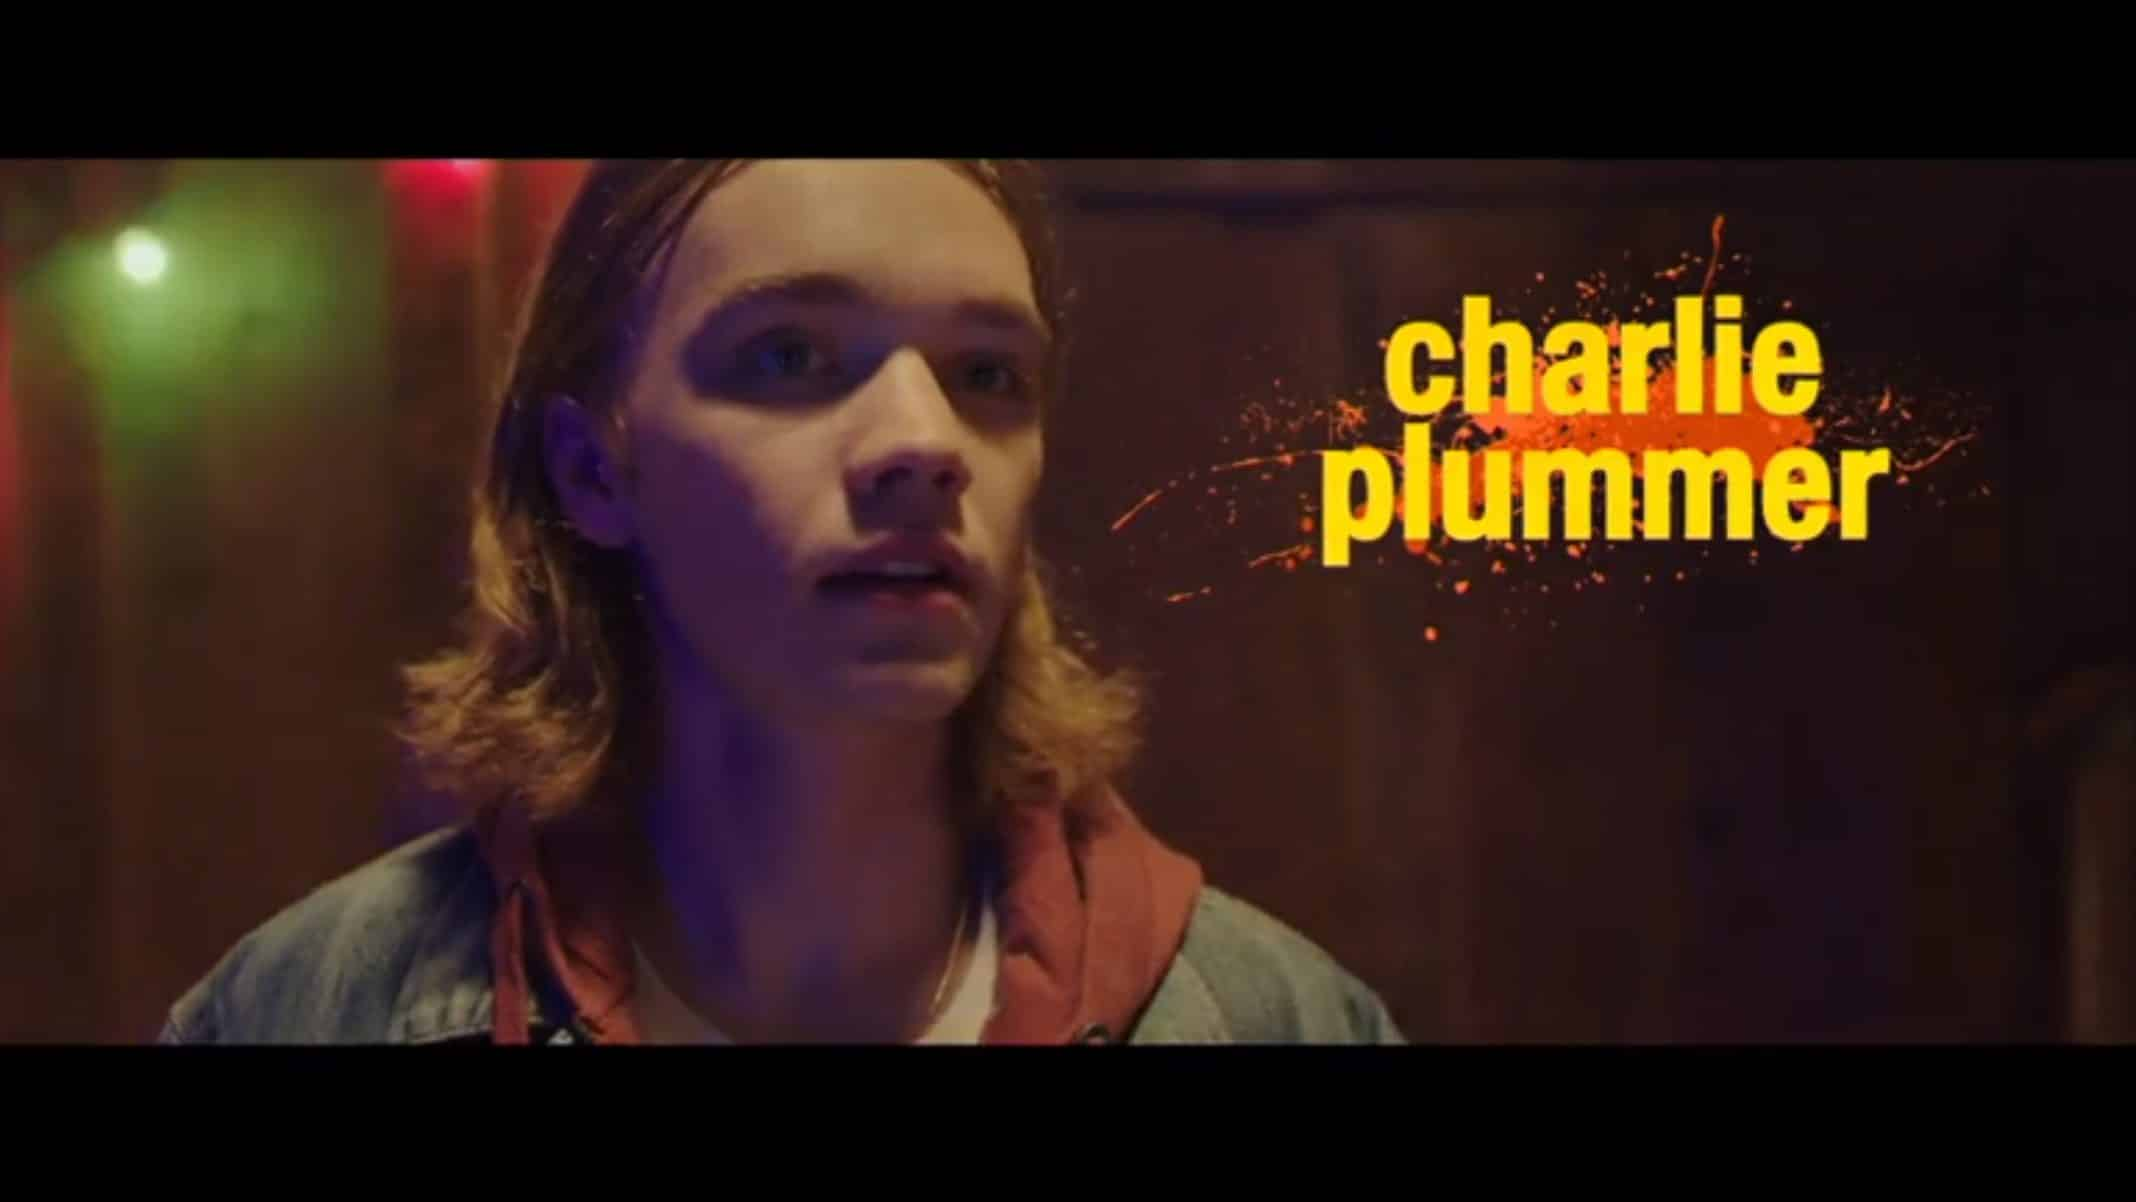 Dylan (Charlie Plummer)  with his long locks on his shoulders, stunned by something.